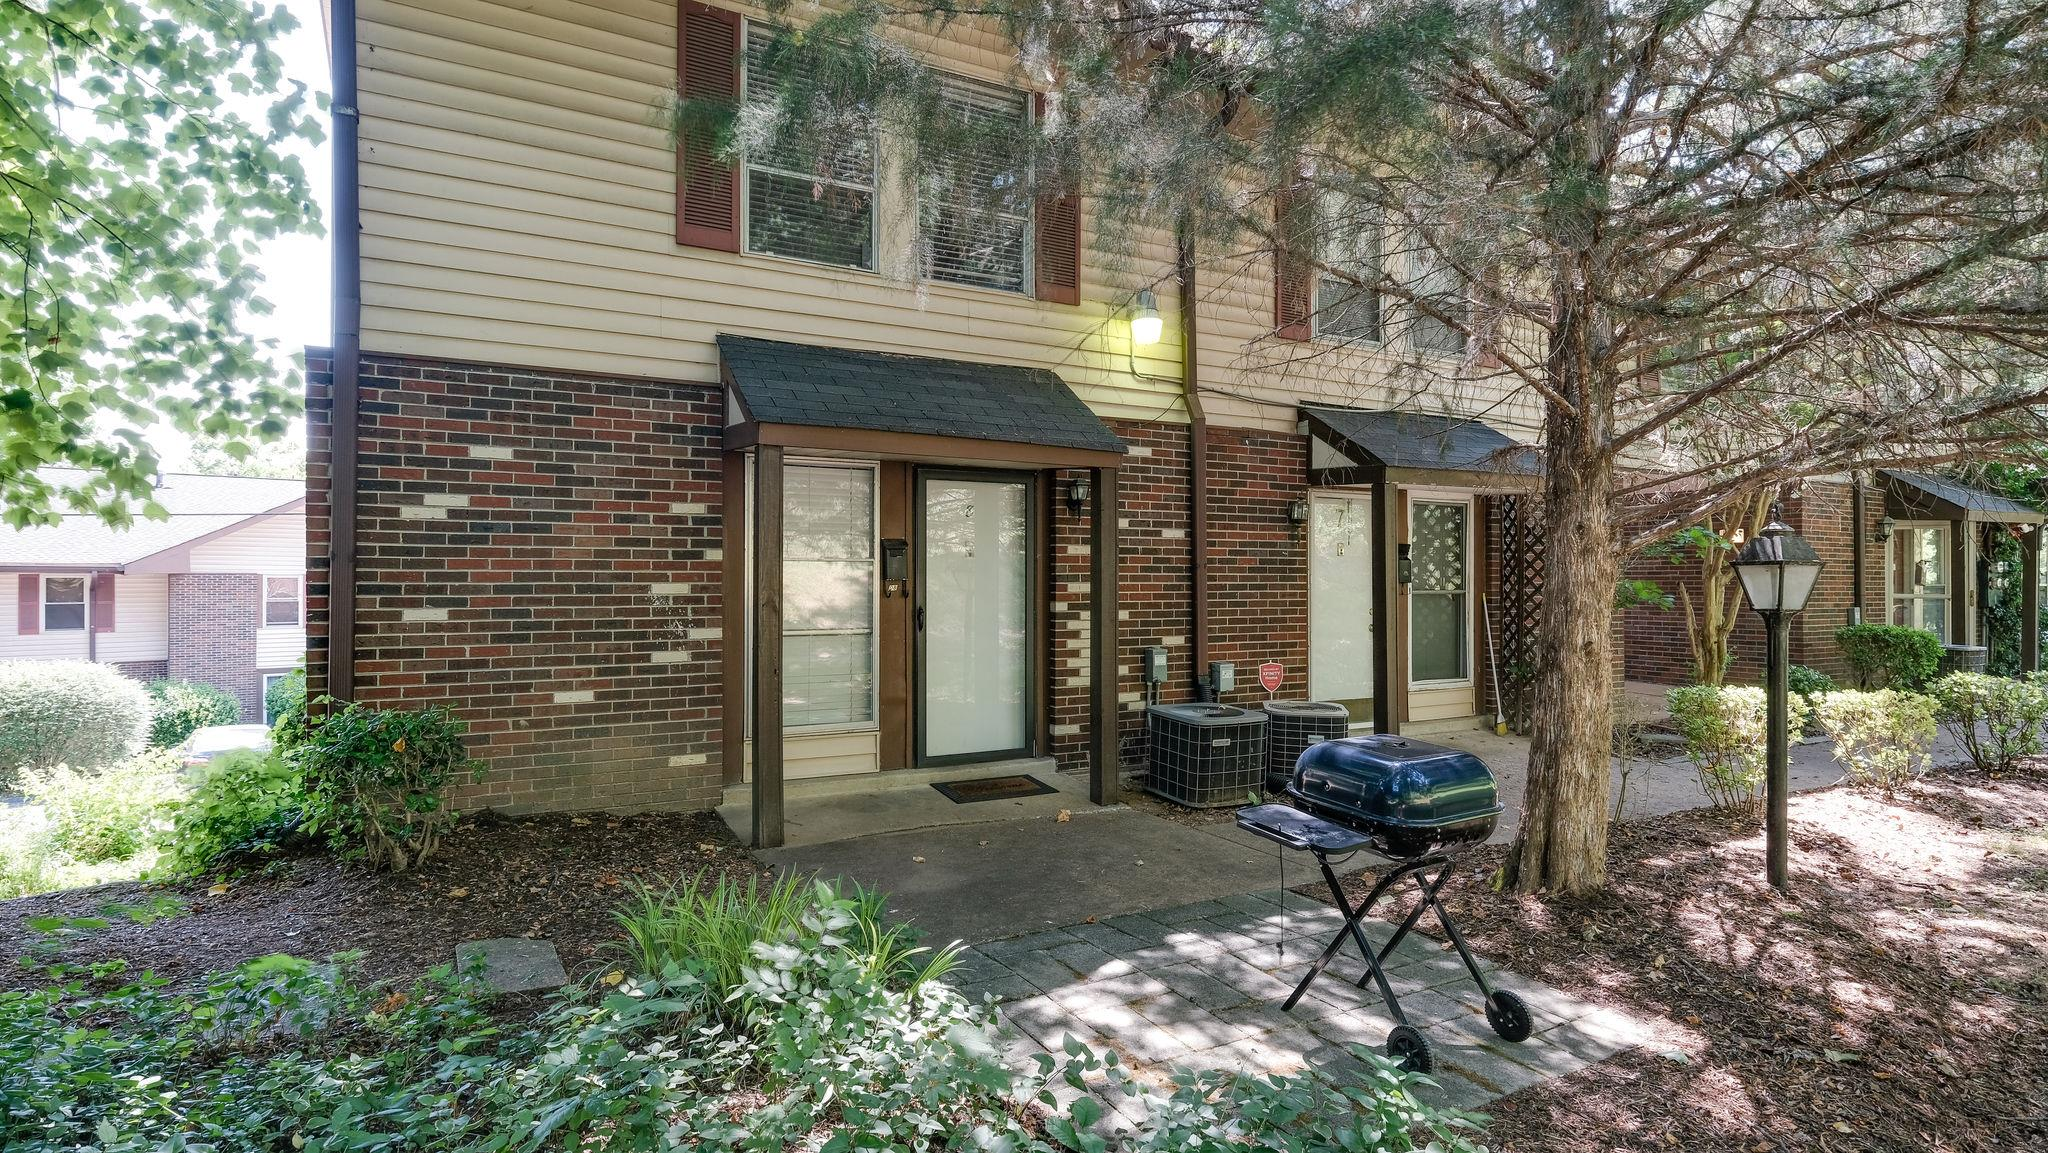 500 Paragon Mills Rd Apt D8, Nashville, TN 37211 - Nashville, TN real estate listing